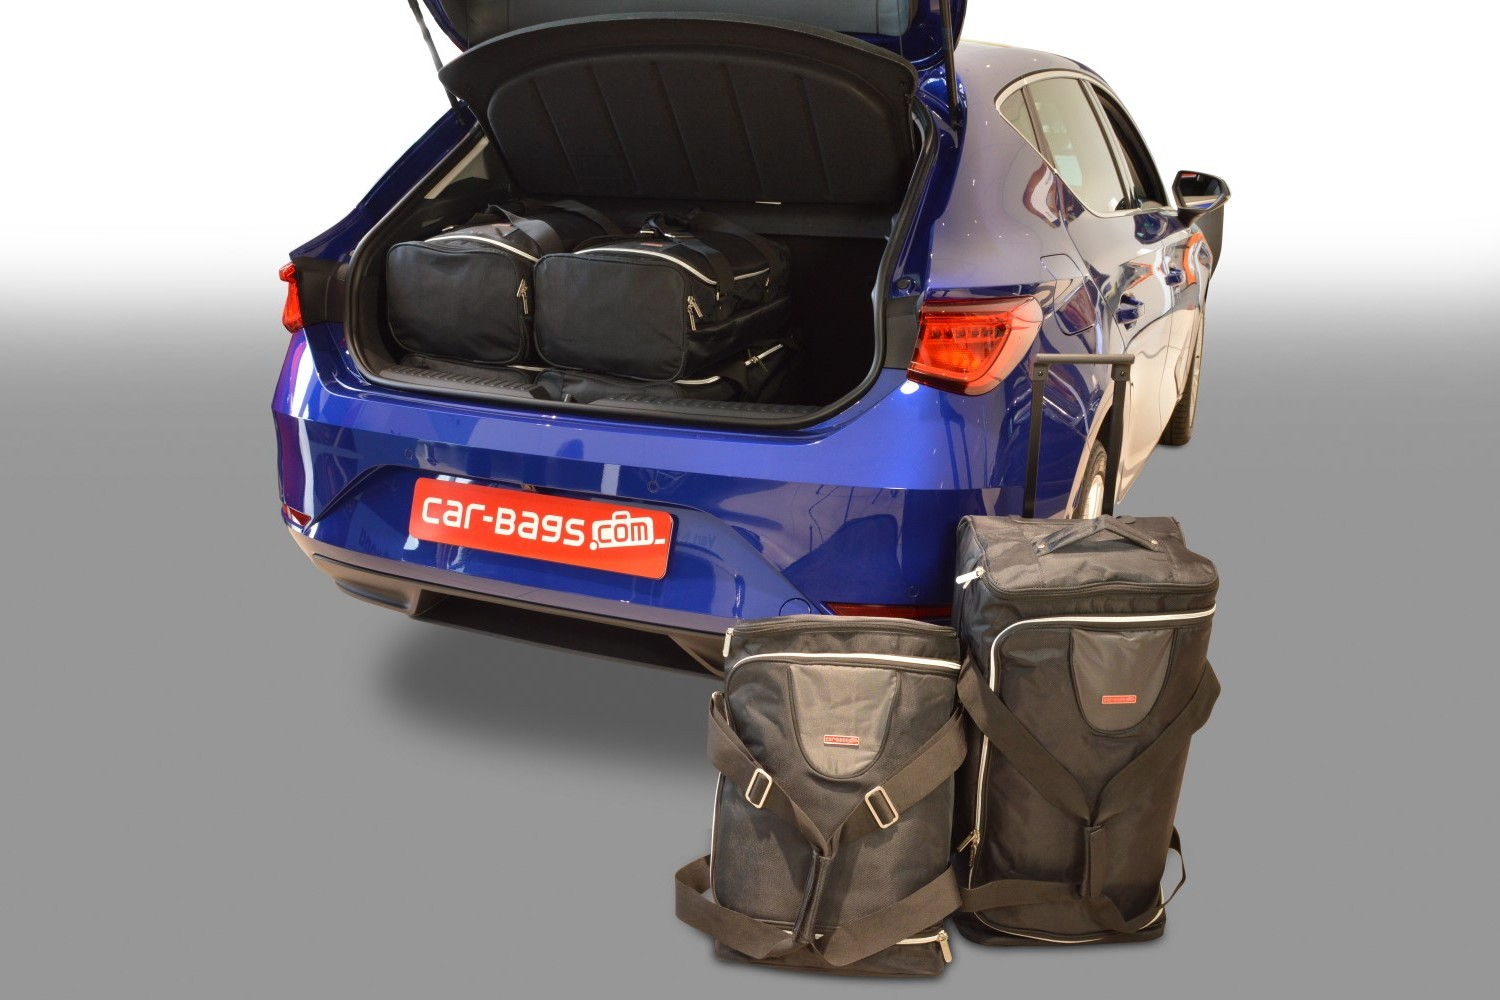 Seat Leon 2020- 5 door Car-Bags.com travel bag set (1)